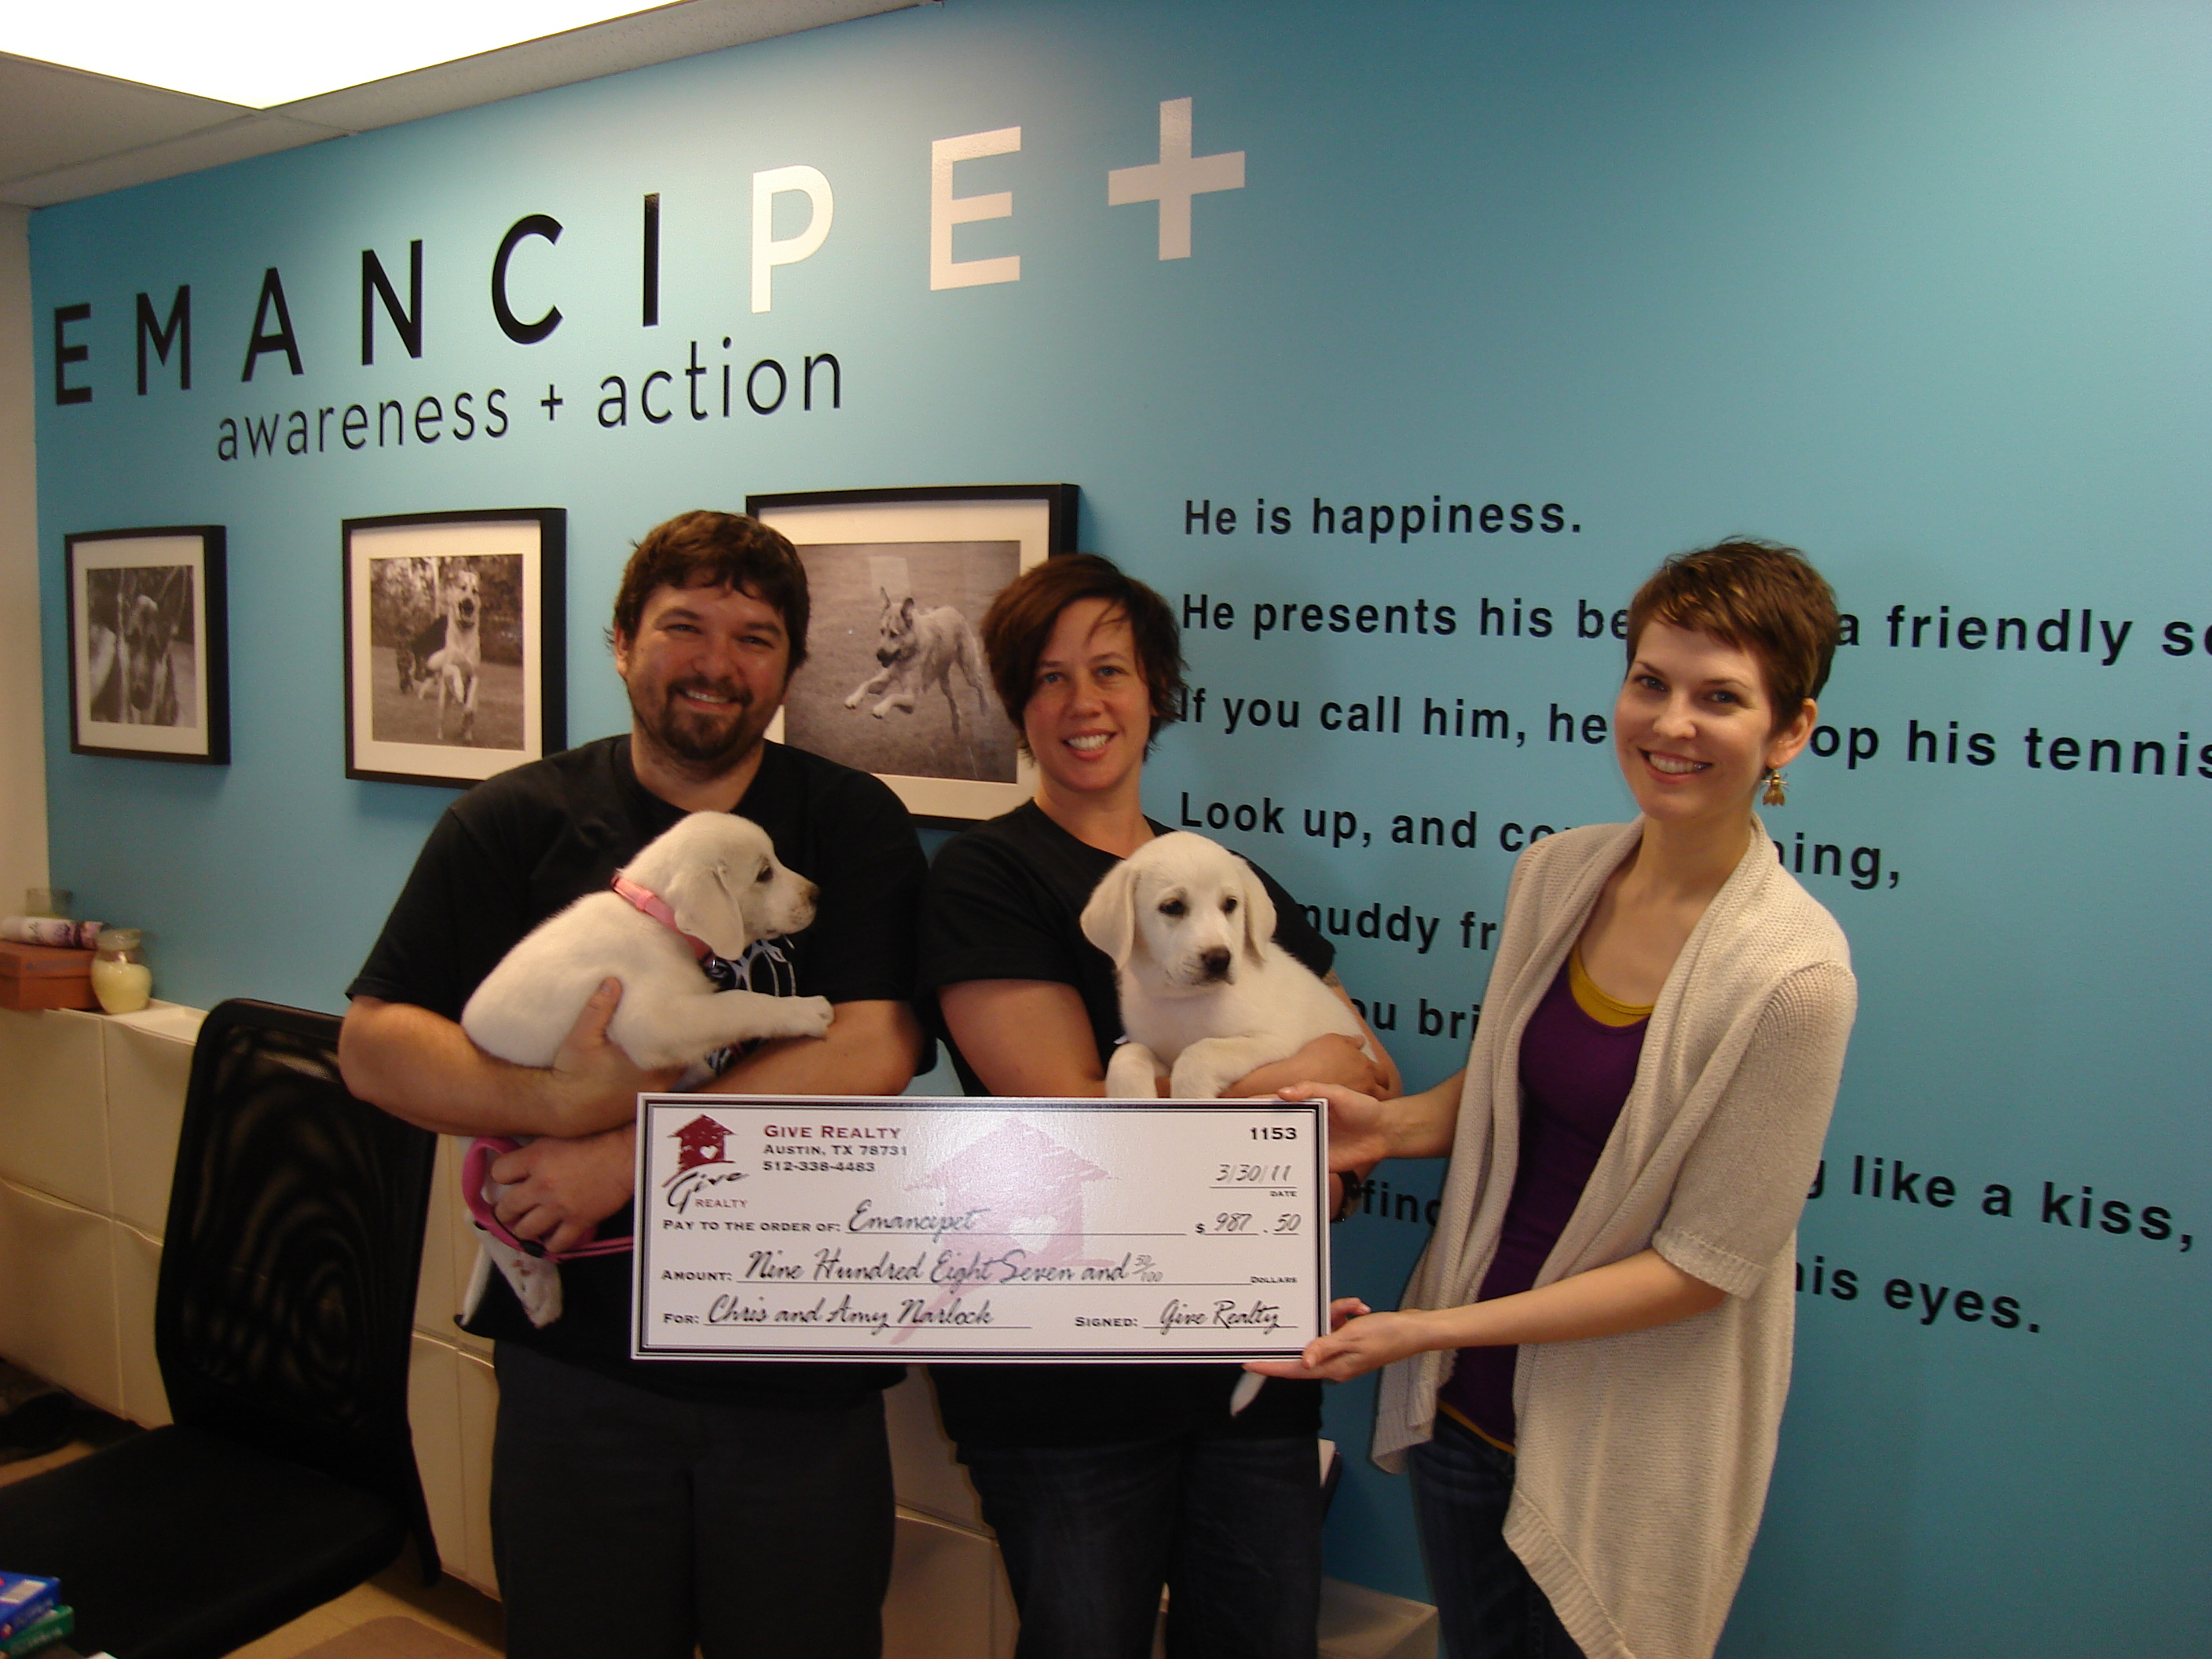 $1,000.00 donated to REDArena and $987.50 donated to Emancipet on behalf of Chris and Amy Narlock